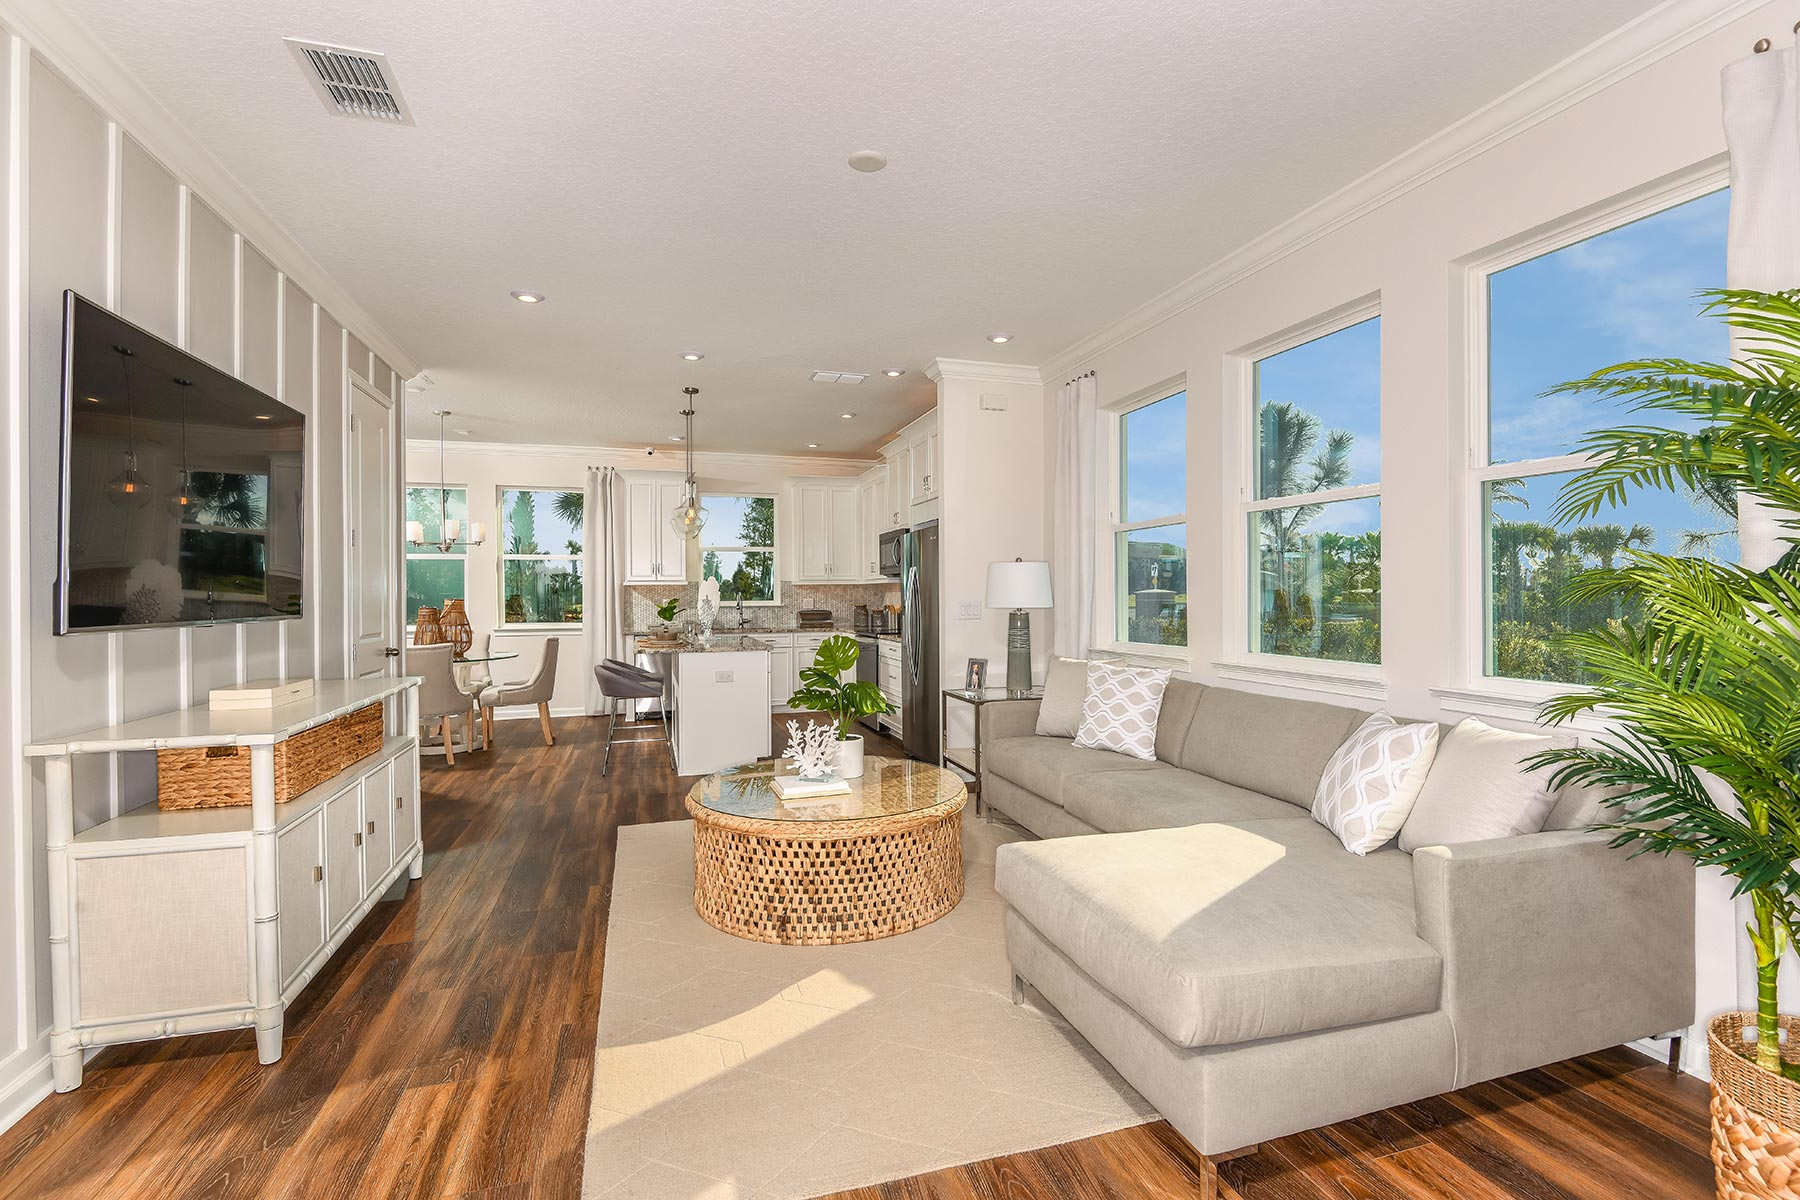 Harmony at Lakewood Ranch Greatroom in Lakewood Ranch Florida by Mattamy Homes